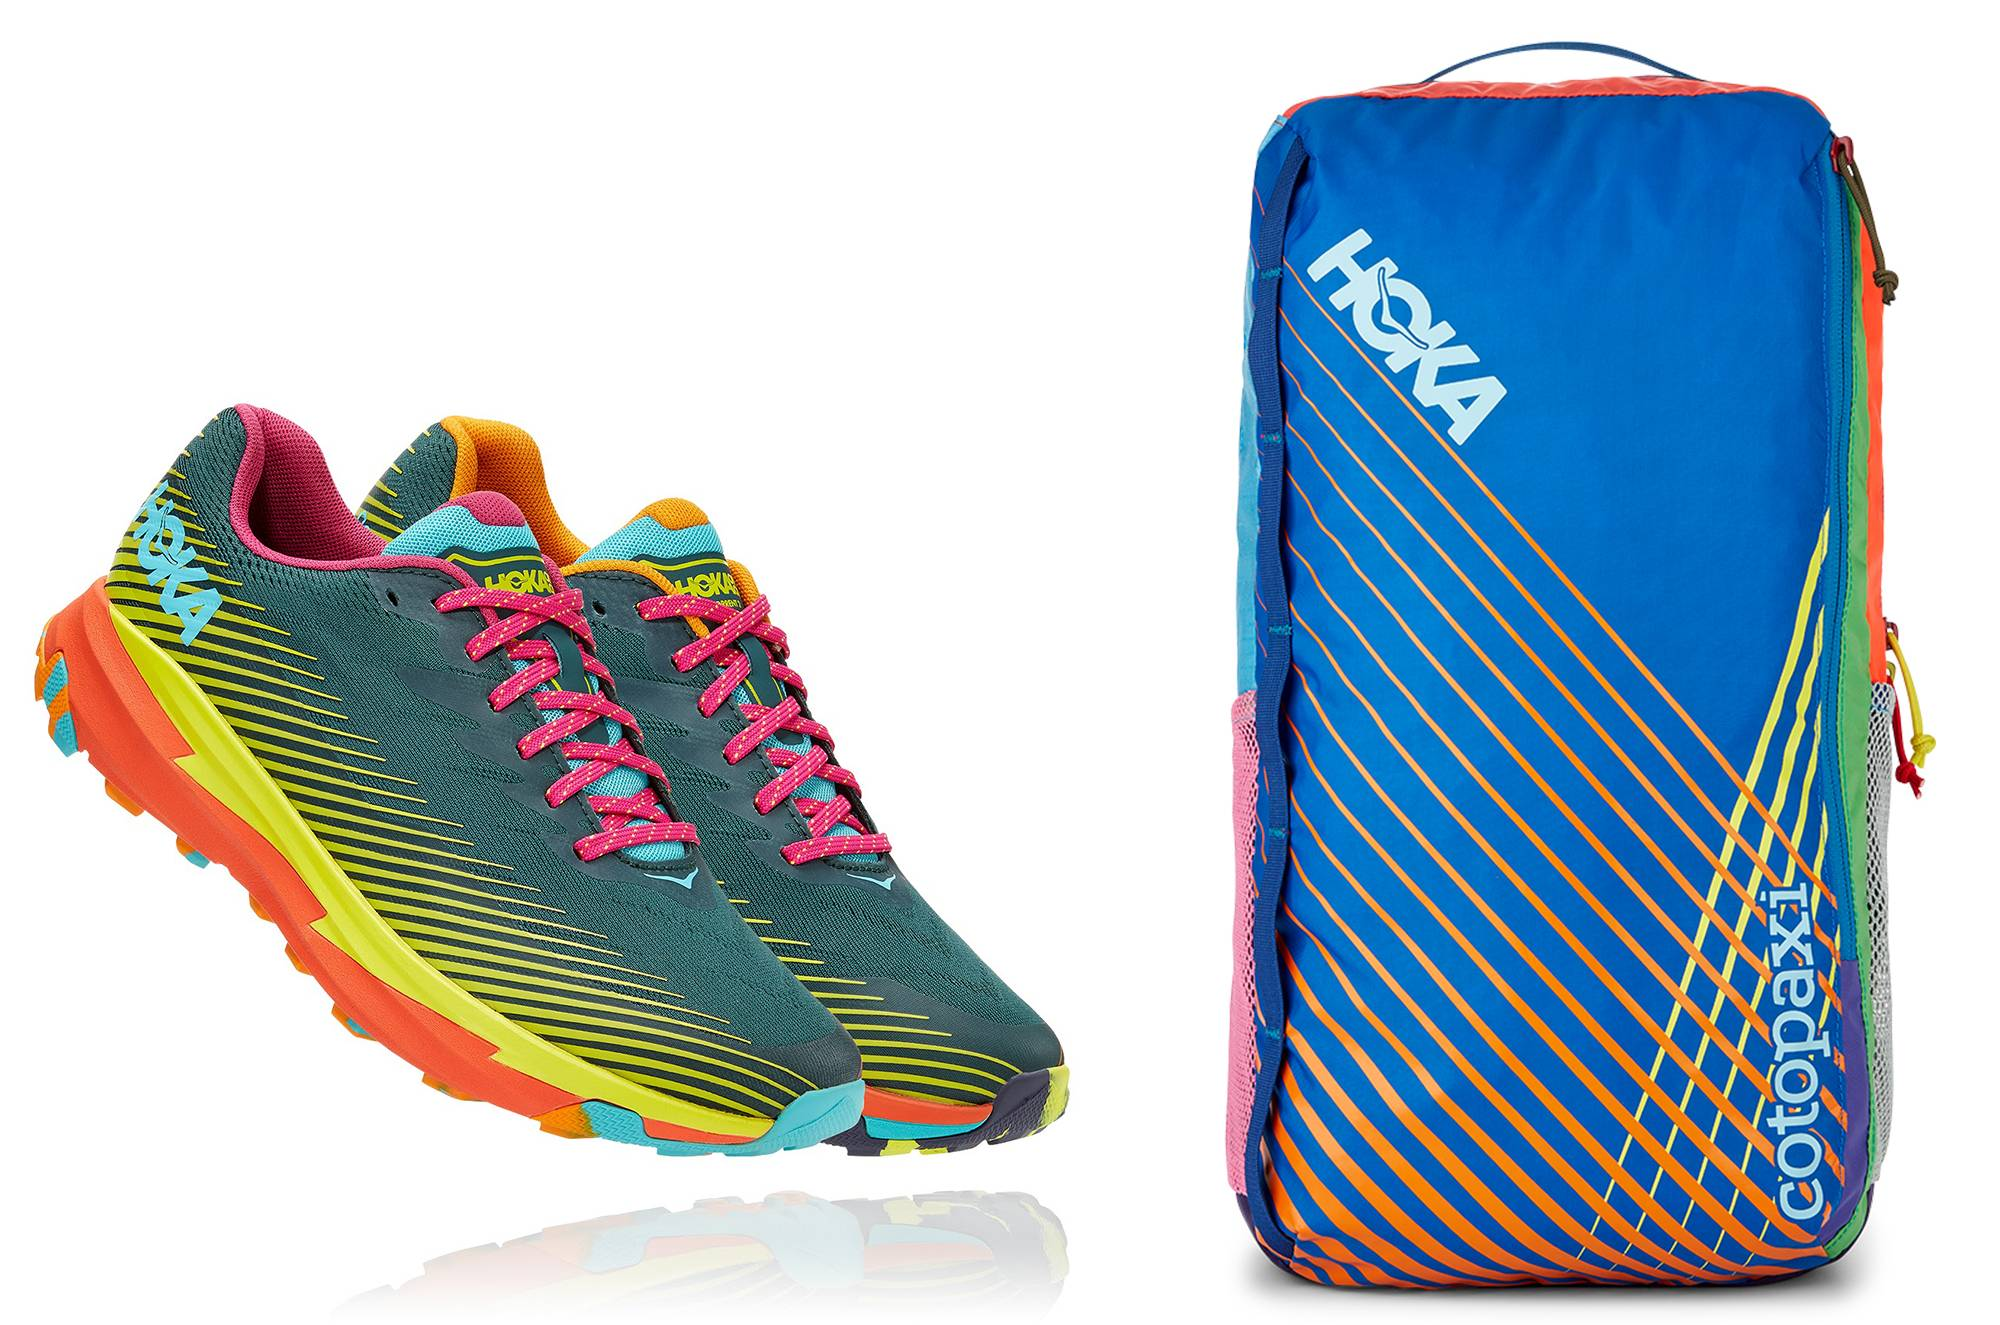 HOKA x Cotopaxi Torrent and Del Dia Backpack